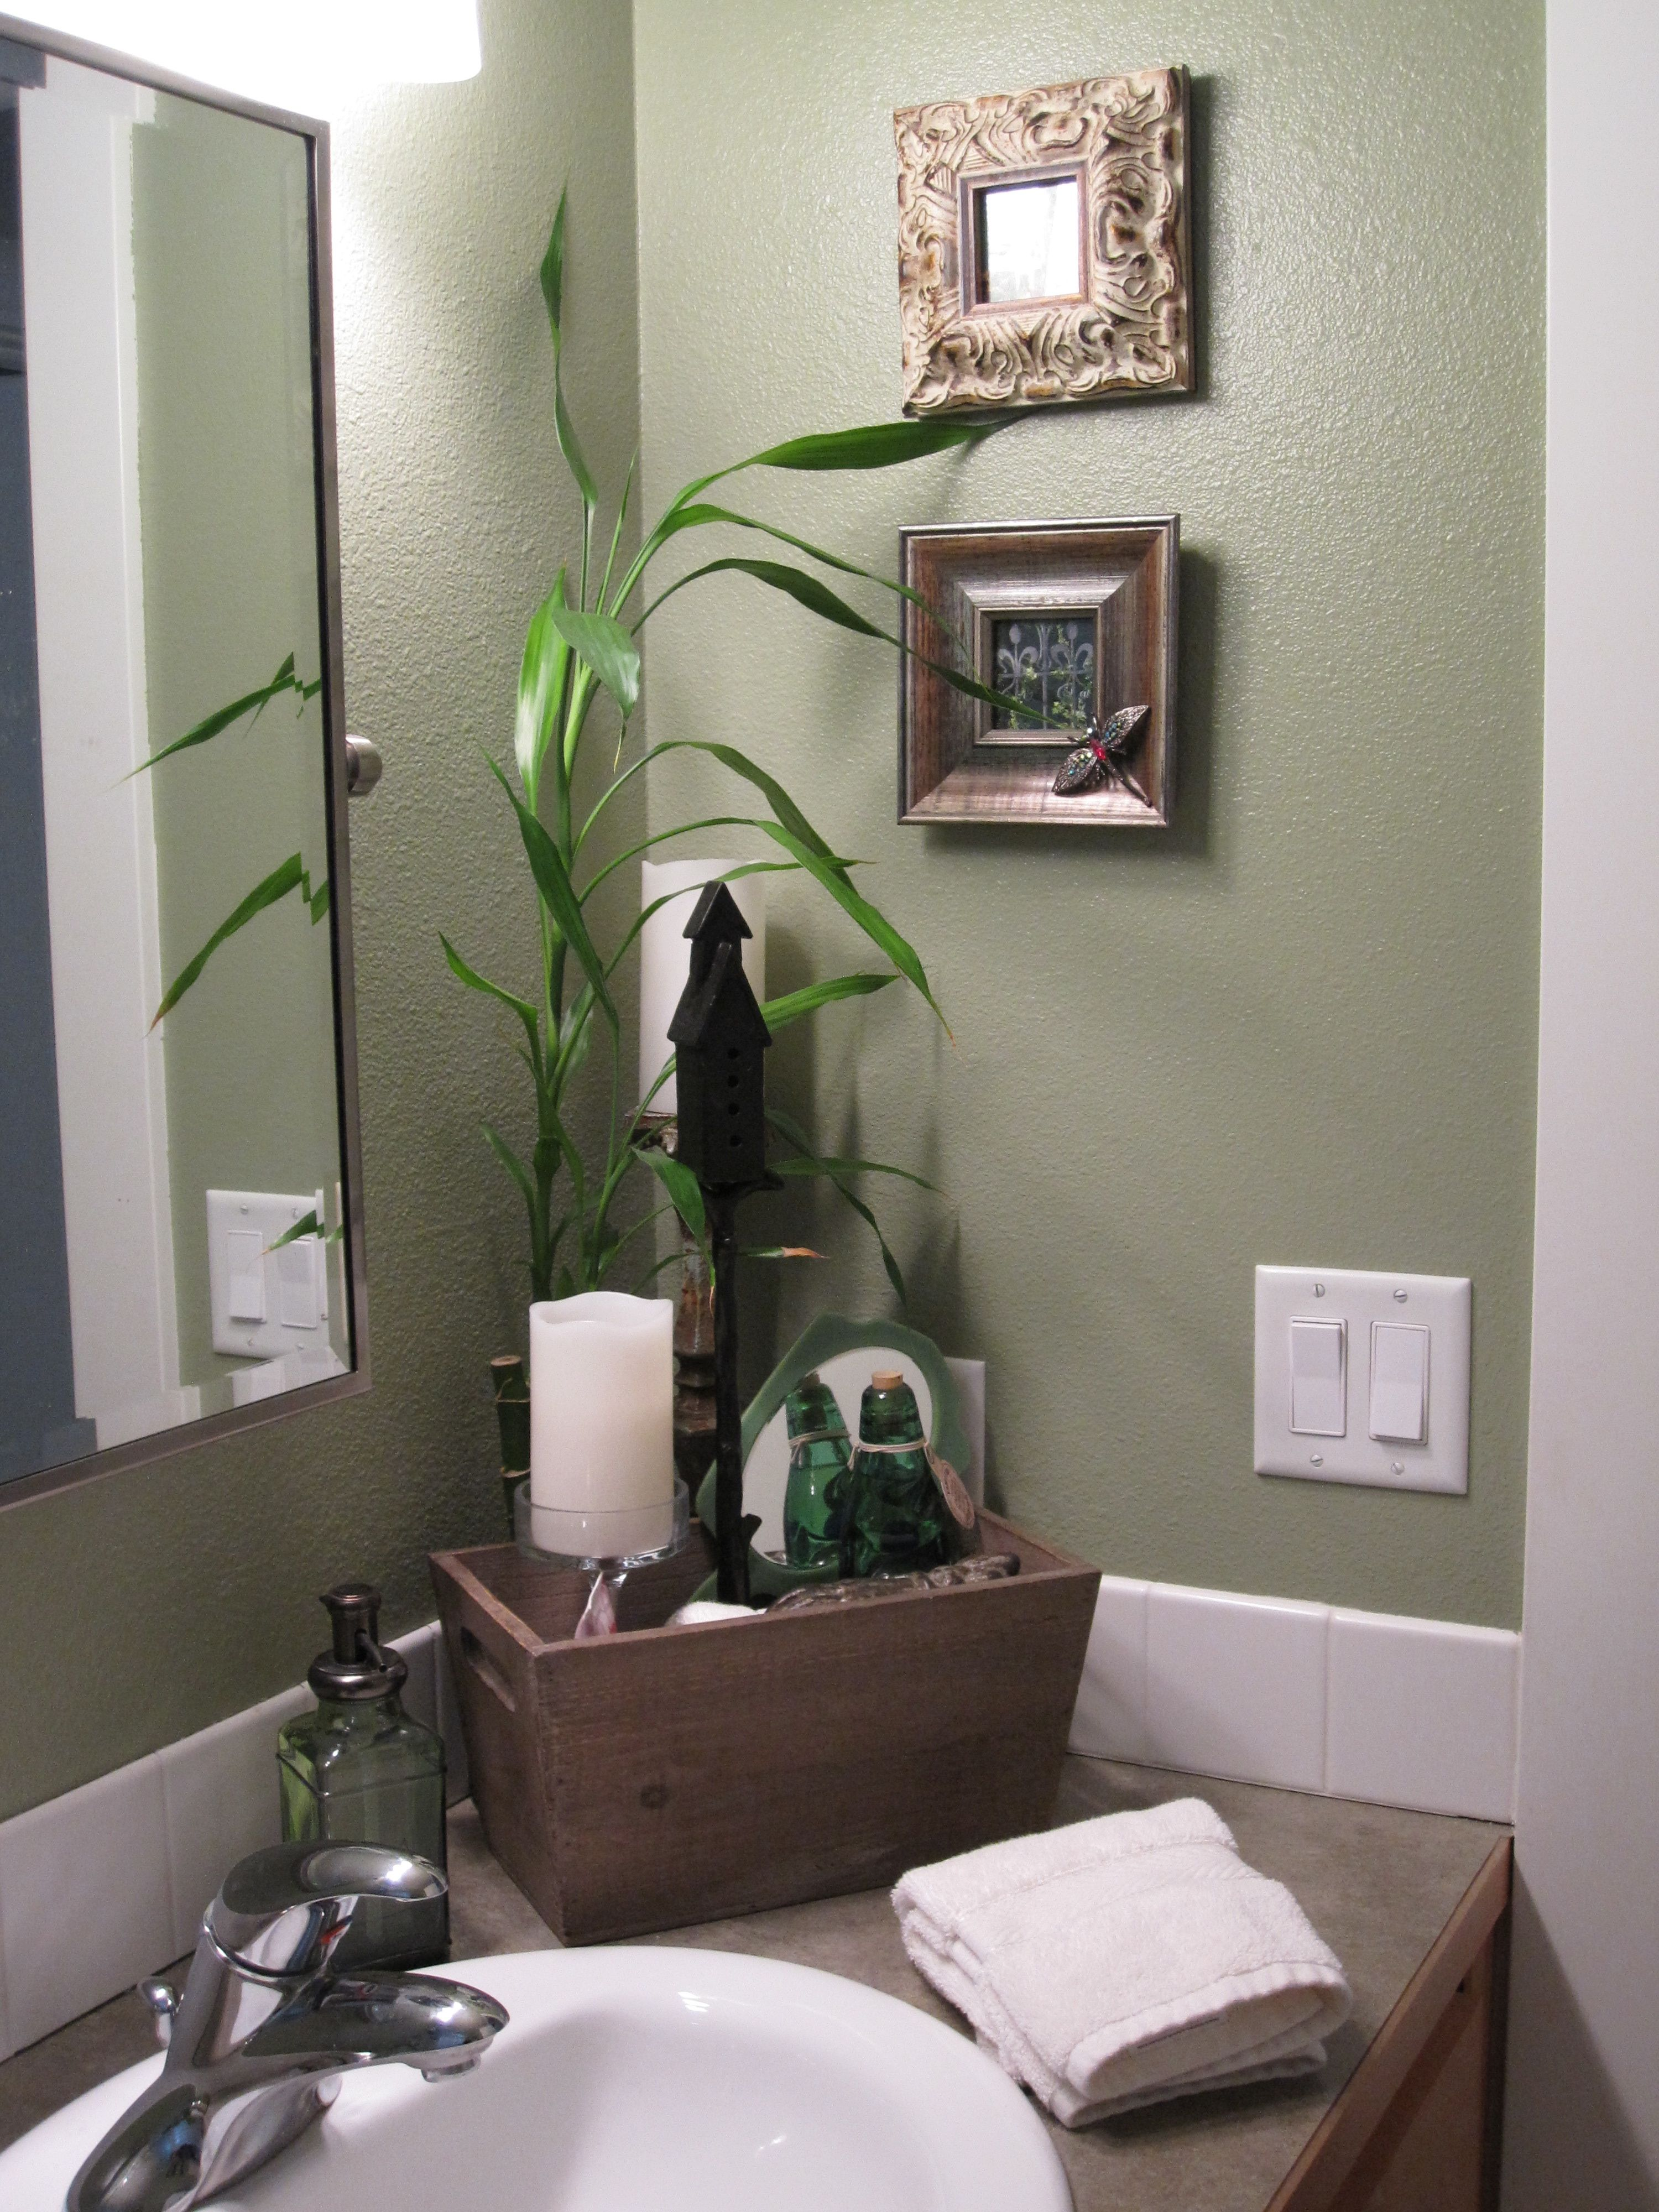 Spa Like Feel In The Guest Bathroom The Fresh Green Color Makes The Narrow Dark Room Feel